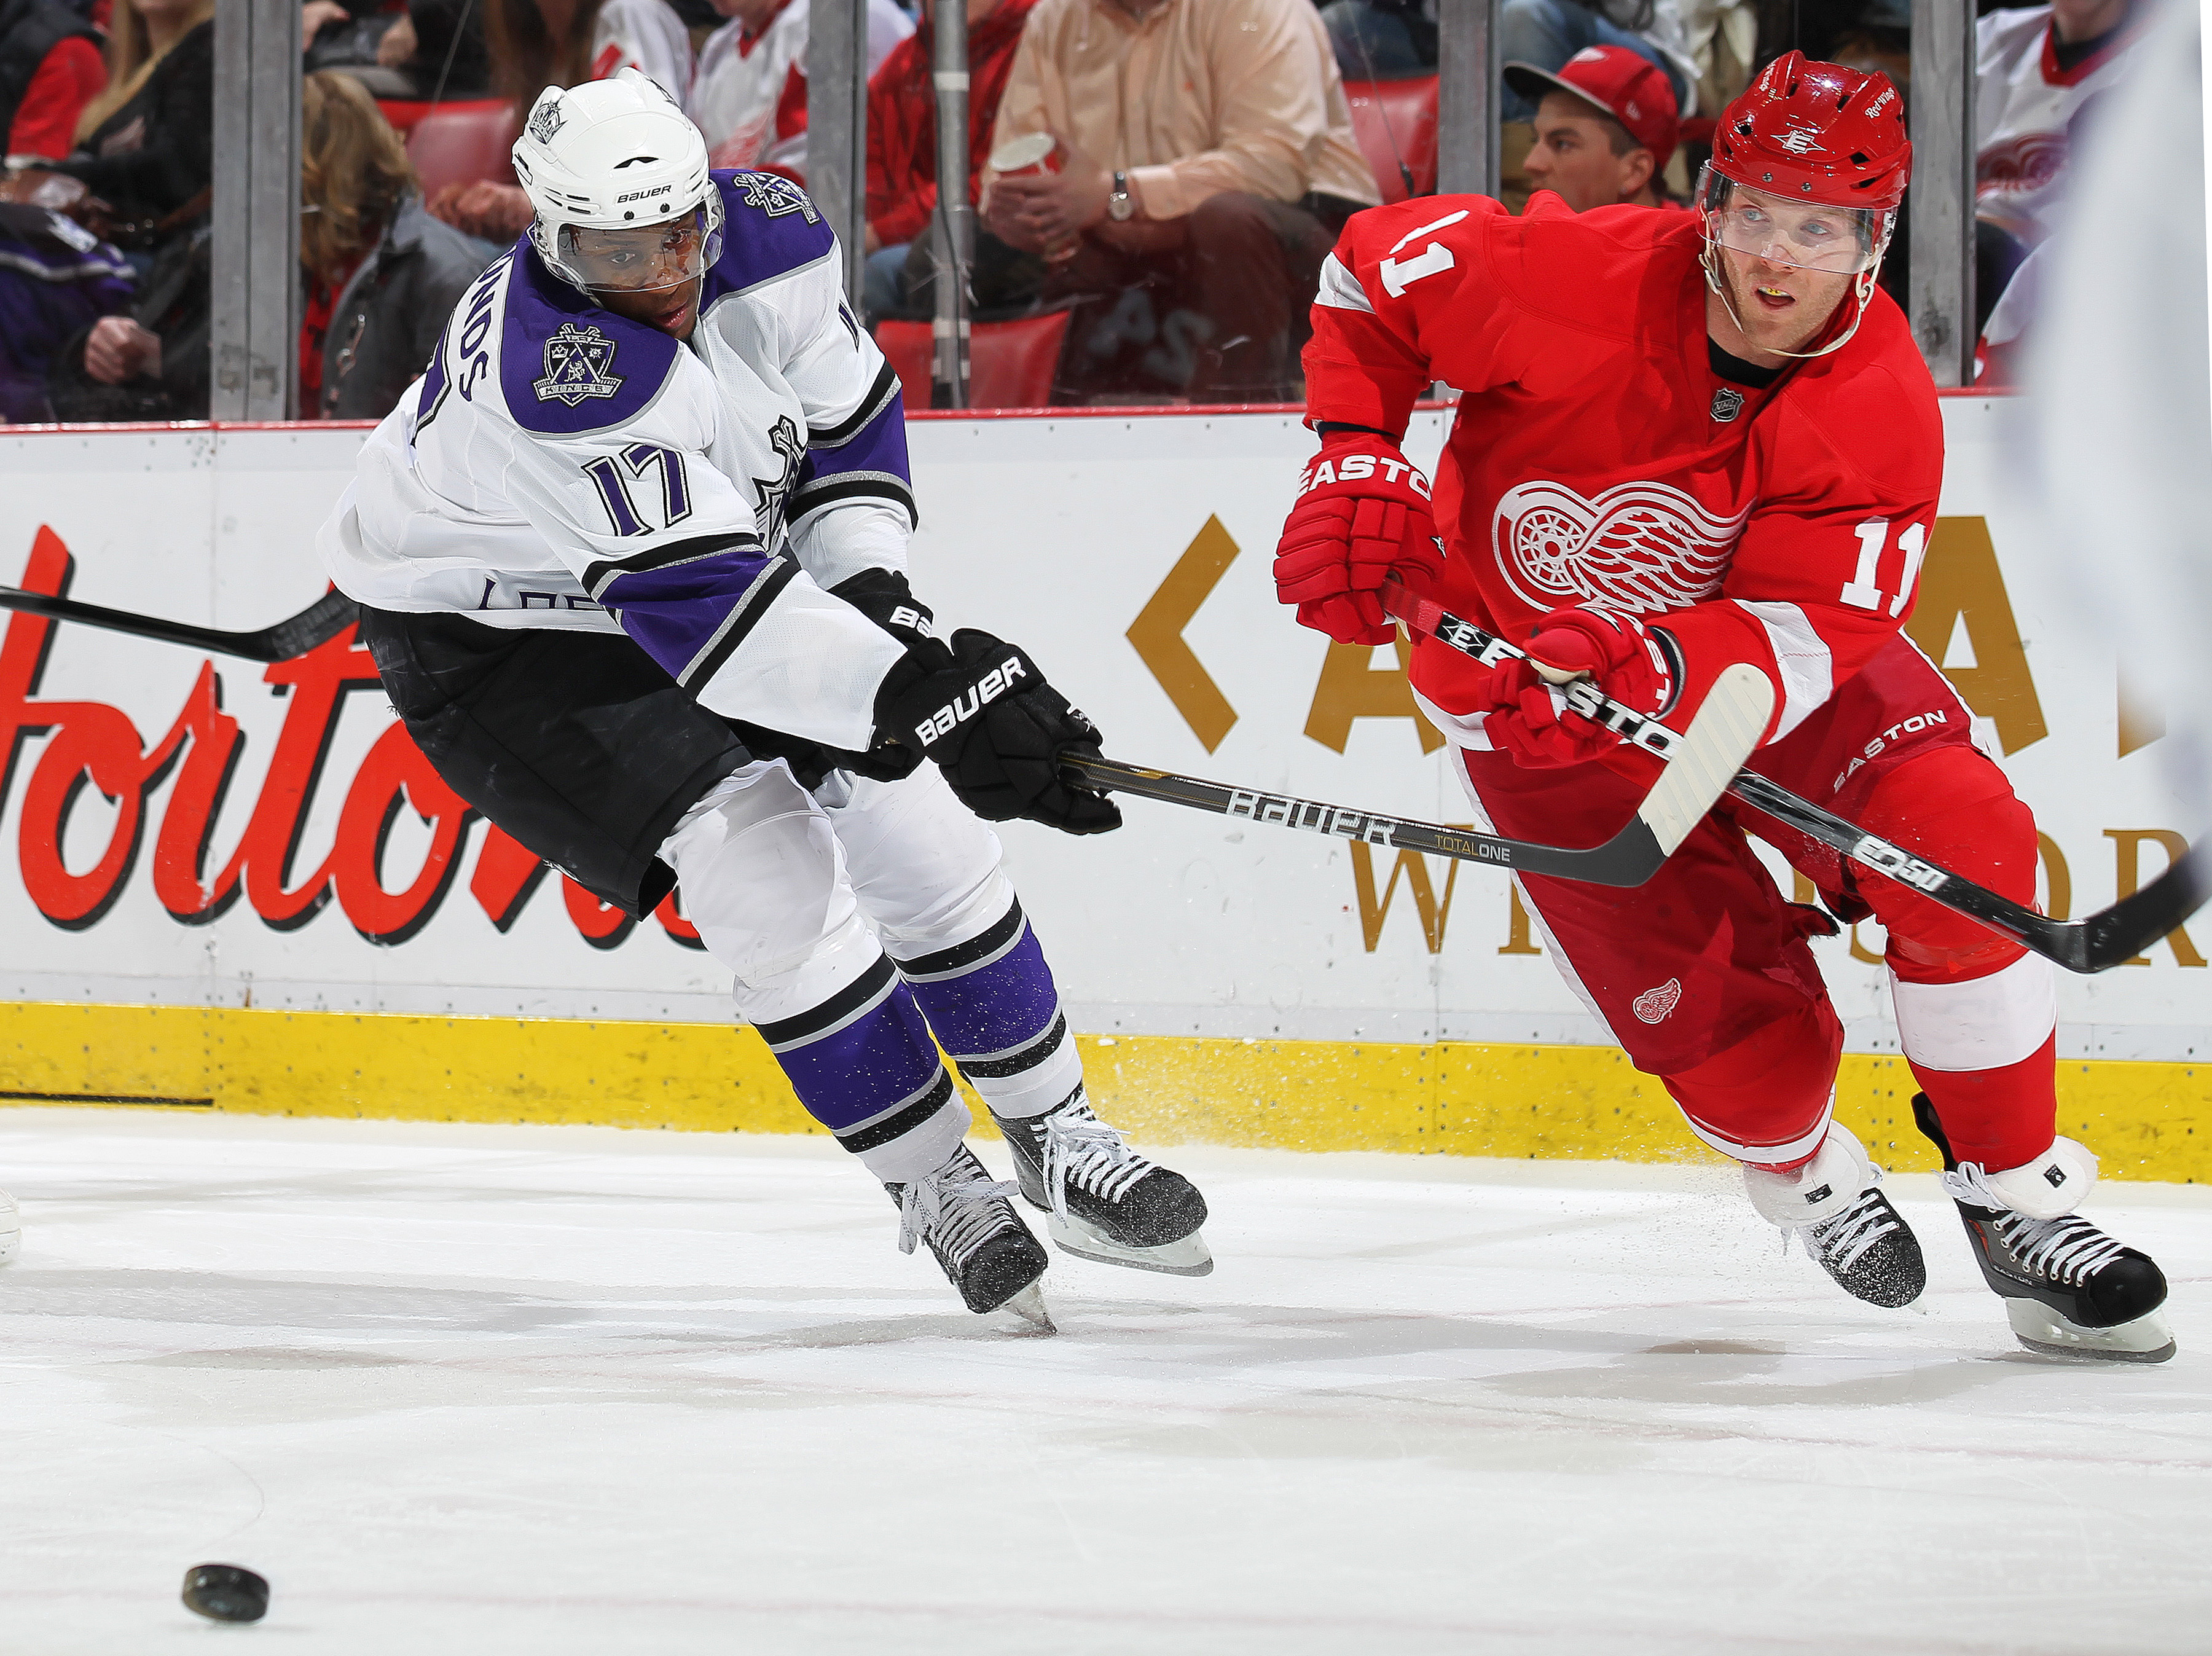 DETROIT, MI - MARCH 9:  Wayne Simmonds #17 of the Los Angeles Kings tries to stop Daniel Cleary #11 of the Detroit Red Wings from clearing the puck in a game on March 9, 2011 at the Joe Louis Arena in Detroit, Michigan. (Photo by Claus Andersen/Getty Imag